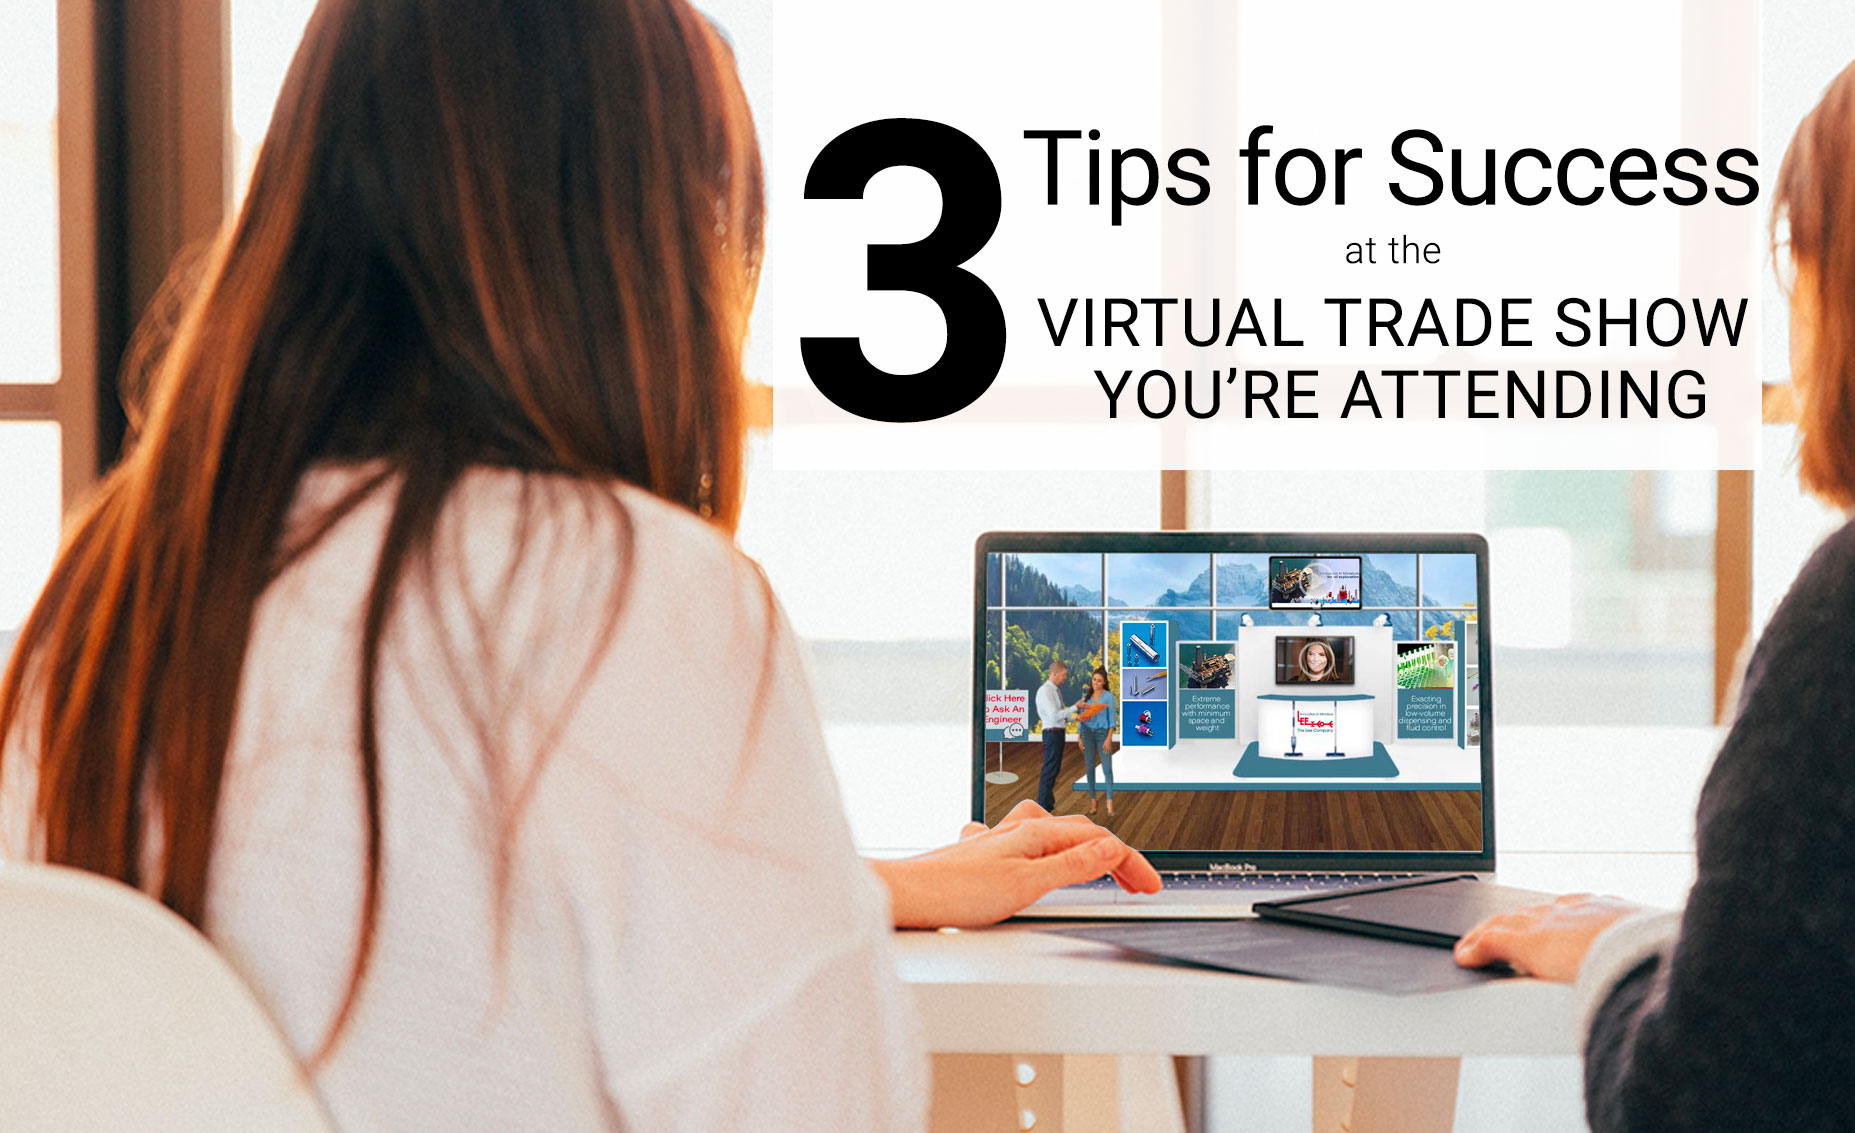 Prepare for virtual trade shows with the same passion as you would in-person trade show. This is your opportunity to gather qualified leads!